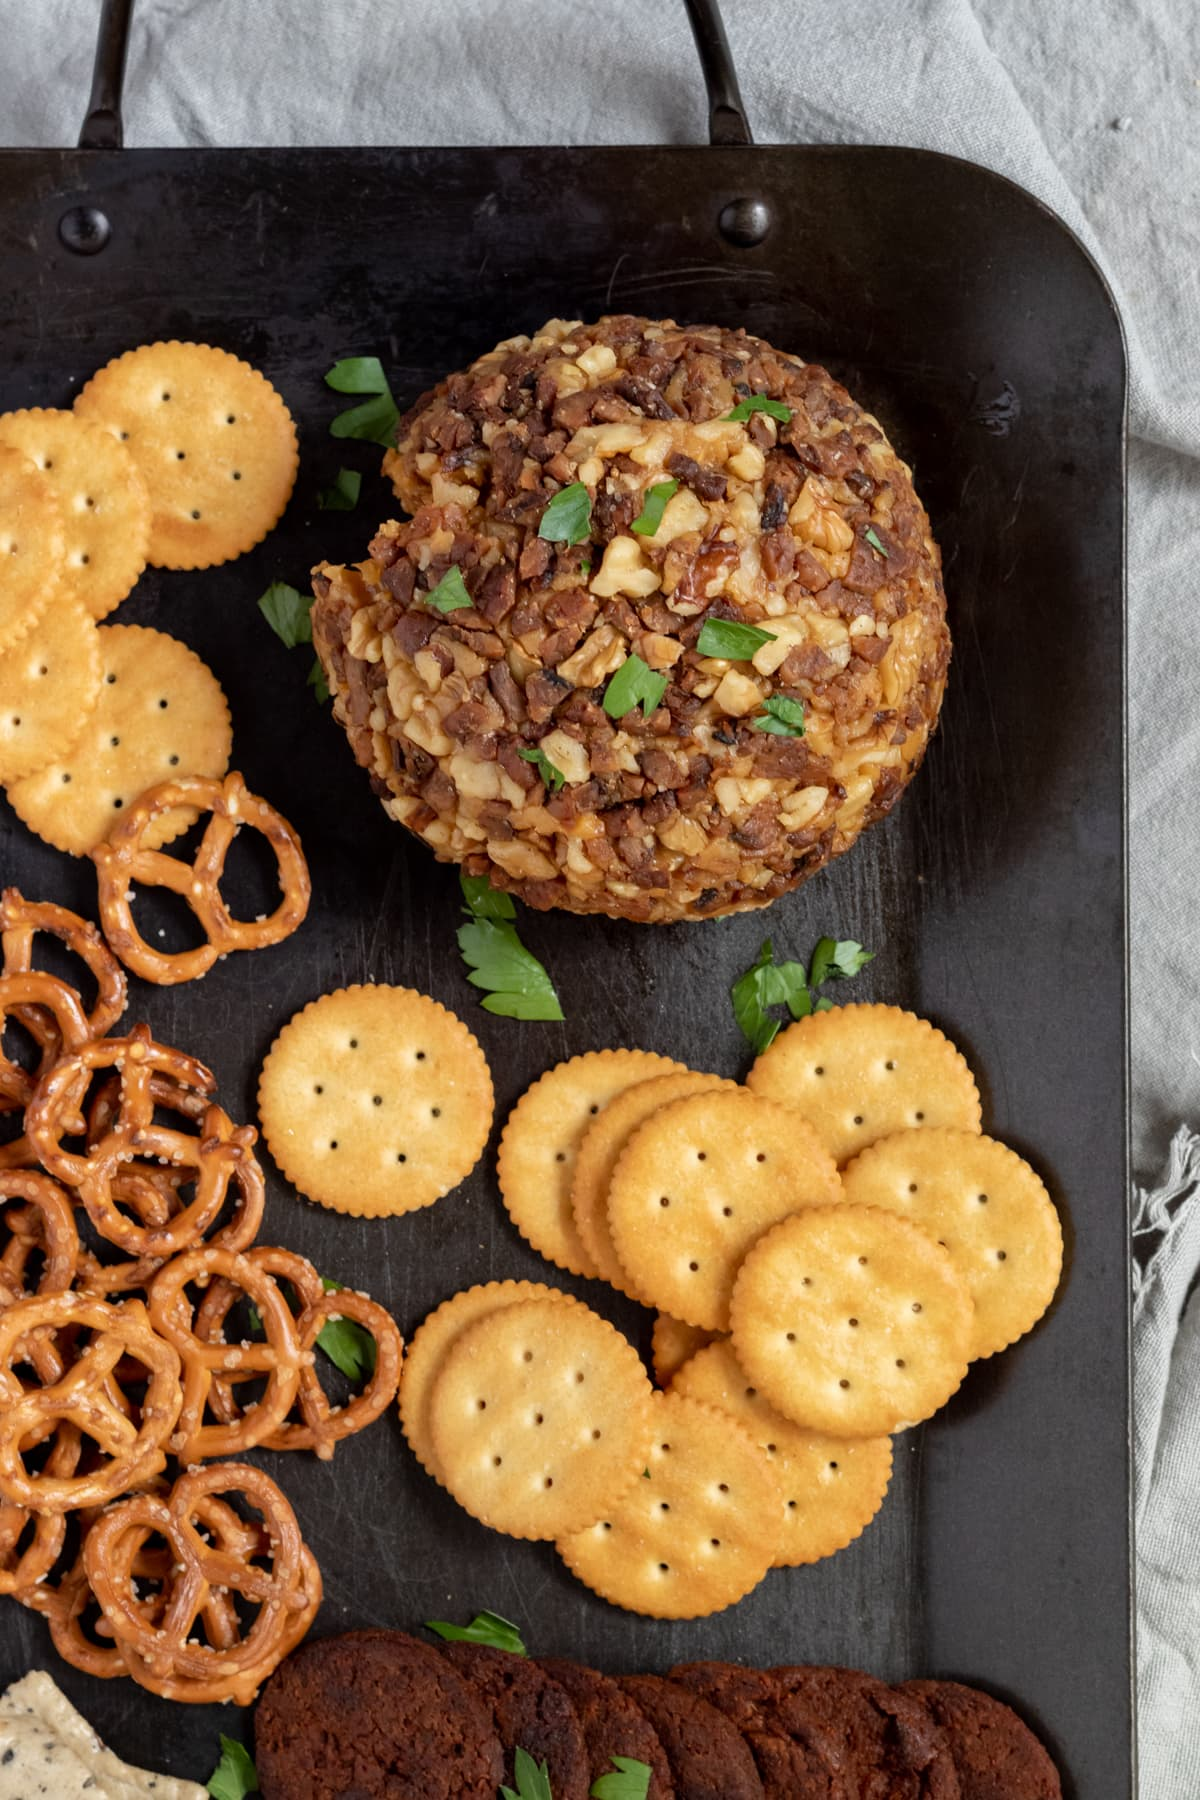 vegan cheese ball on black platter with crackers and pretzels